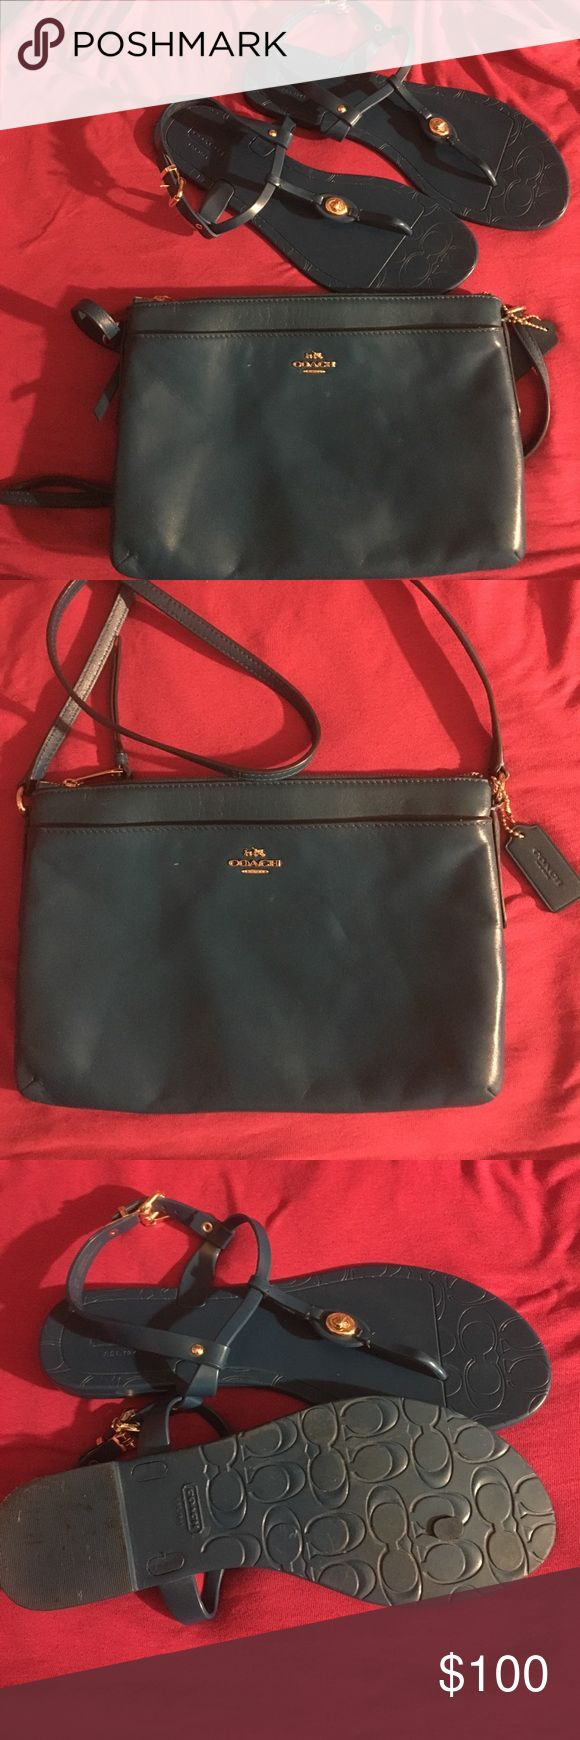 Beautiful Coach cross-body and Sandals✨✨ Very stylish Authentic Coach cross body and Sandals with Gold essentials. Size 10 women's Jelly sandal and the color can be Teal or Turquoise. Pair with maxi dress or ripped jeans and a crop top and your sure to be the most sexist person anywhere. Coach Bags Crossbody Bags